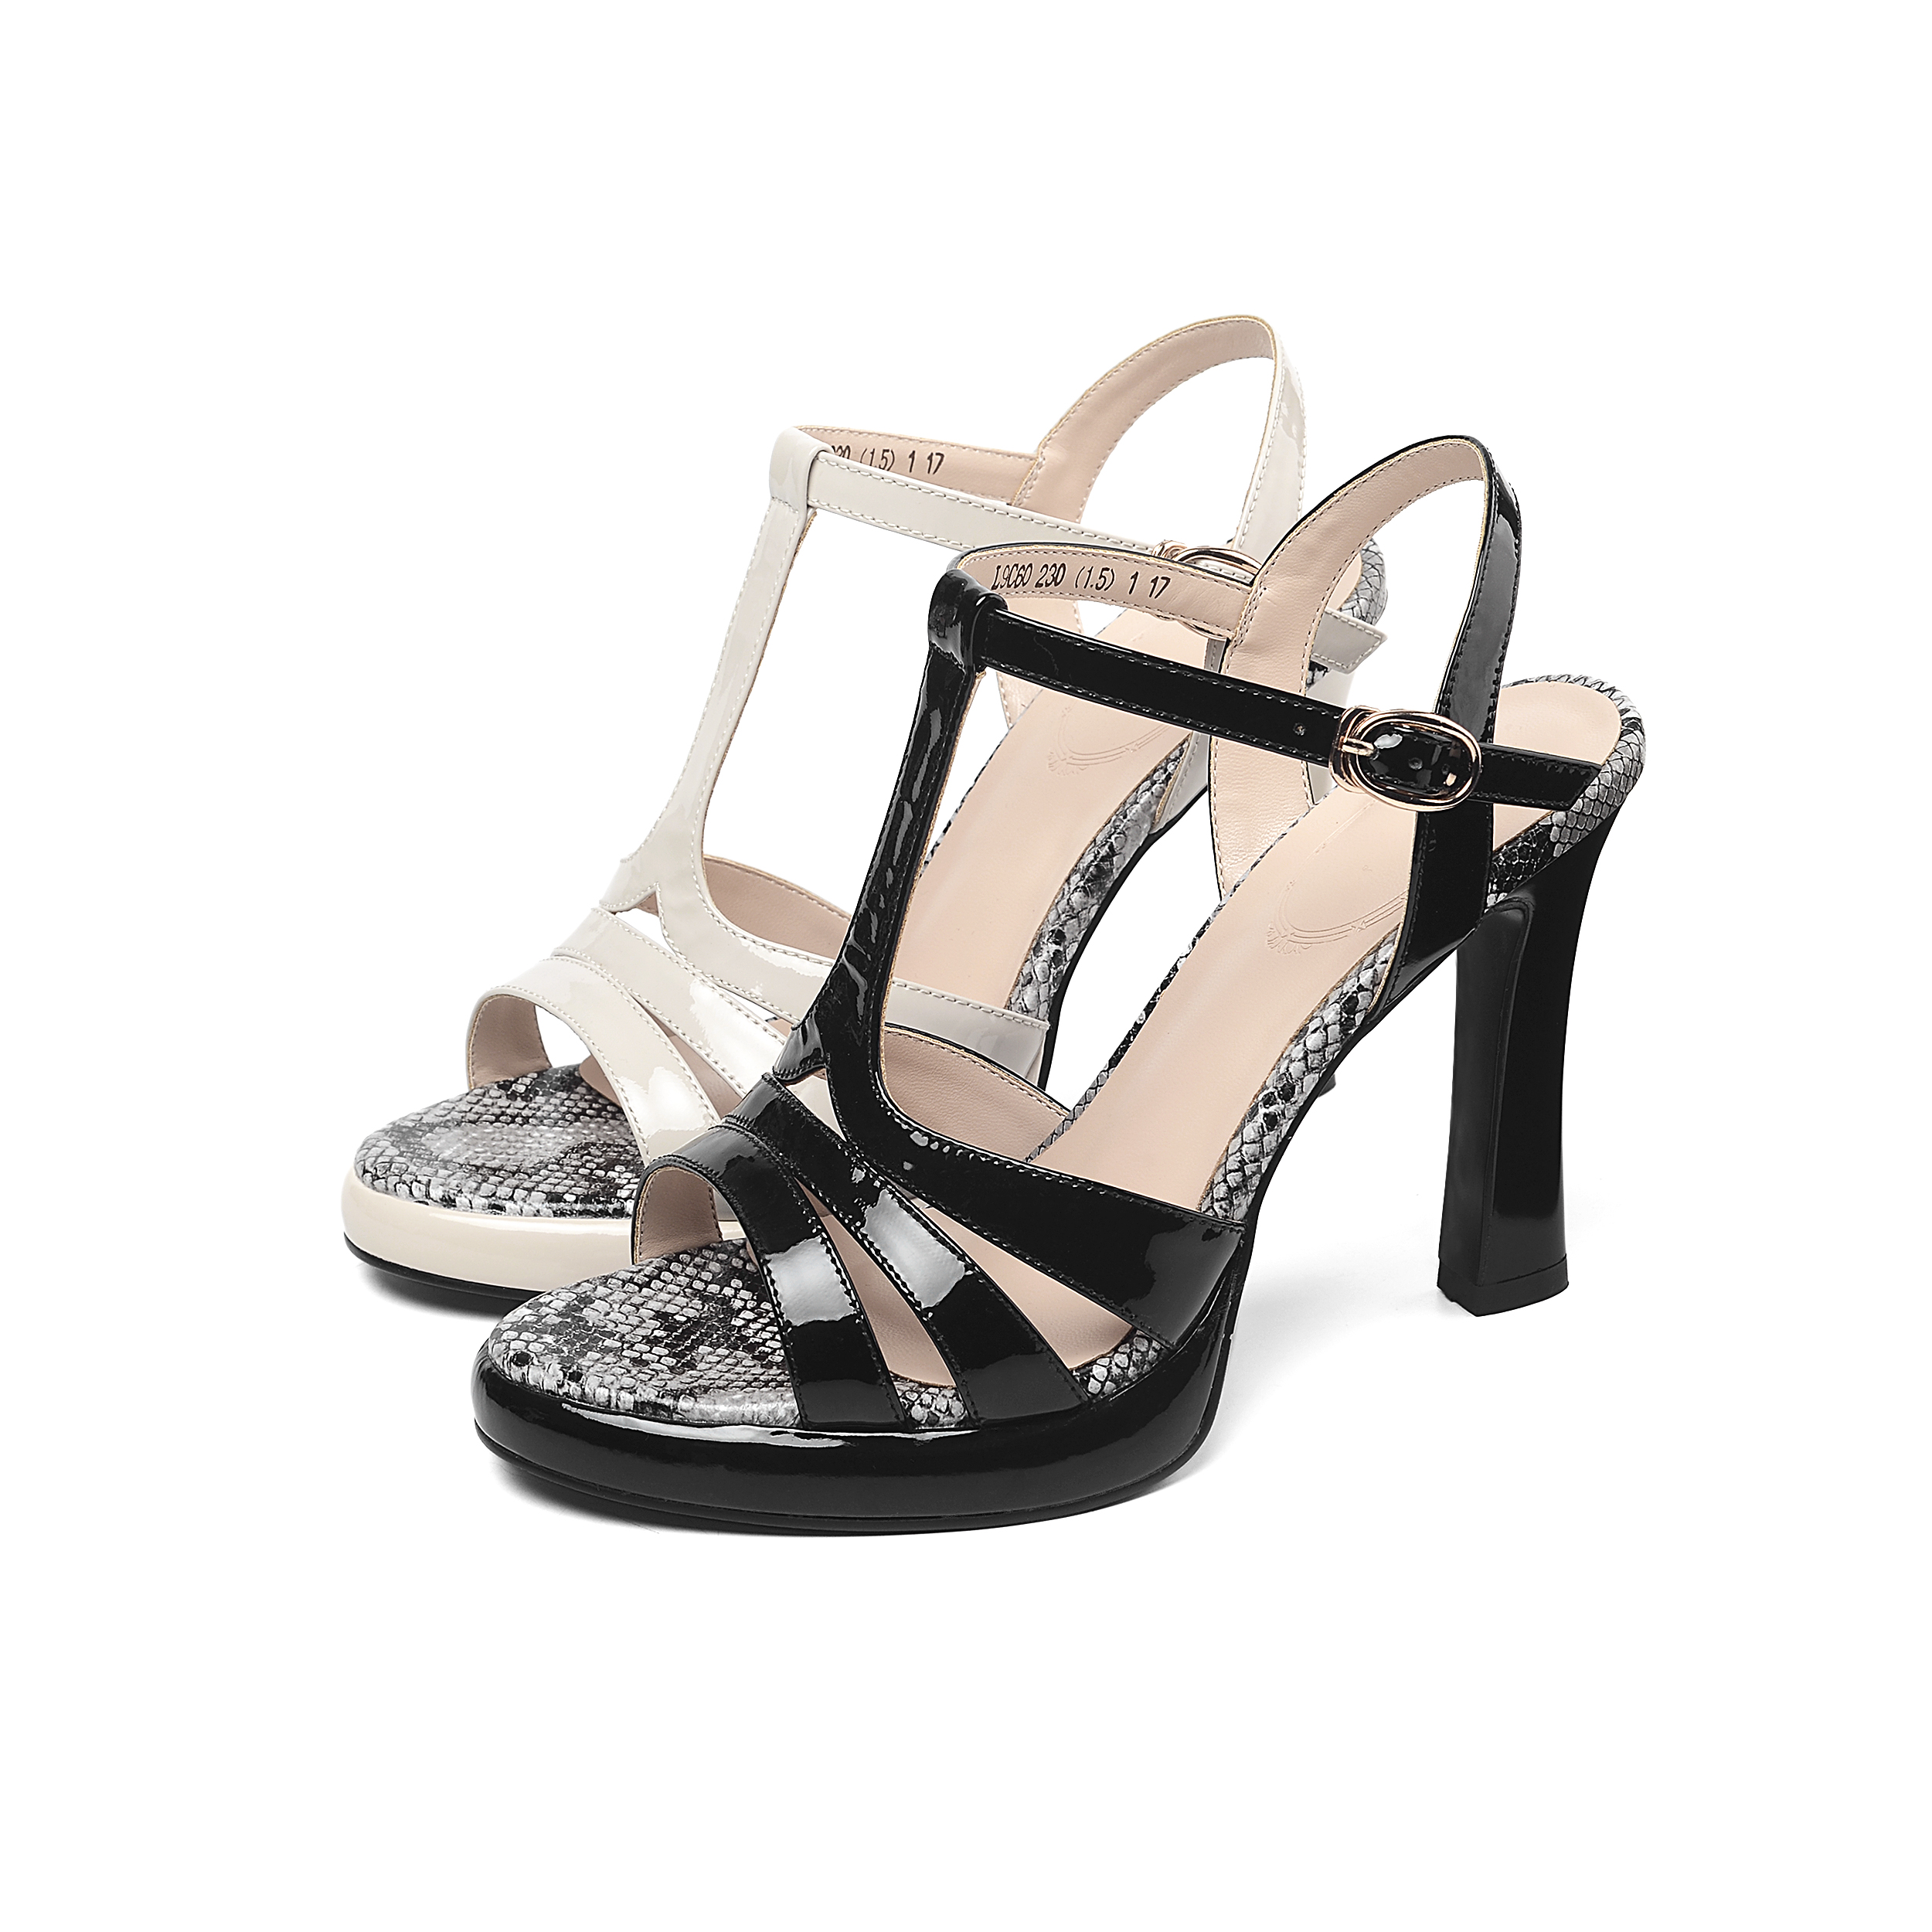 Women Summer Shoes Platform Sandals Jelly Leather High Heels Ankle Strap Sandals Black Beige 10cm in High Heels from Shoes